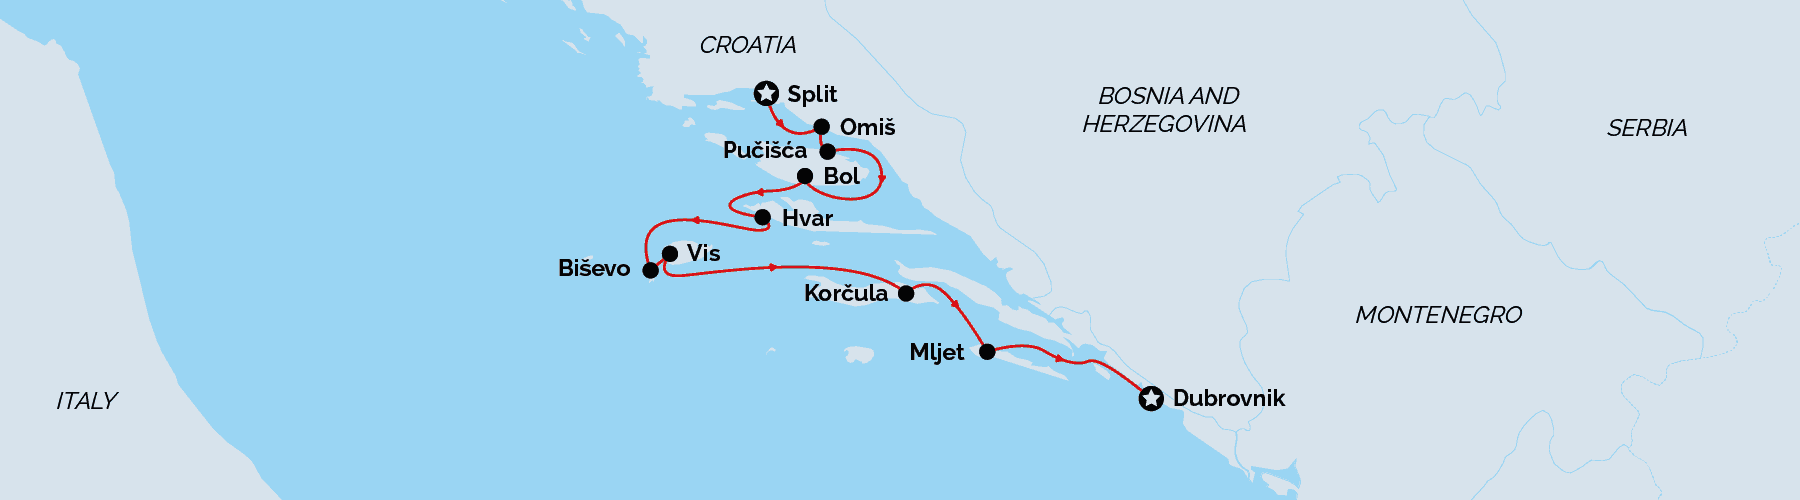 Cruise map Split to Dubrovnik superior